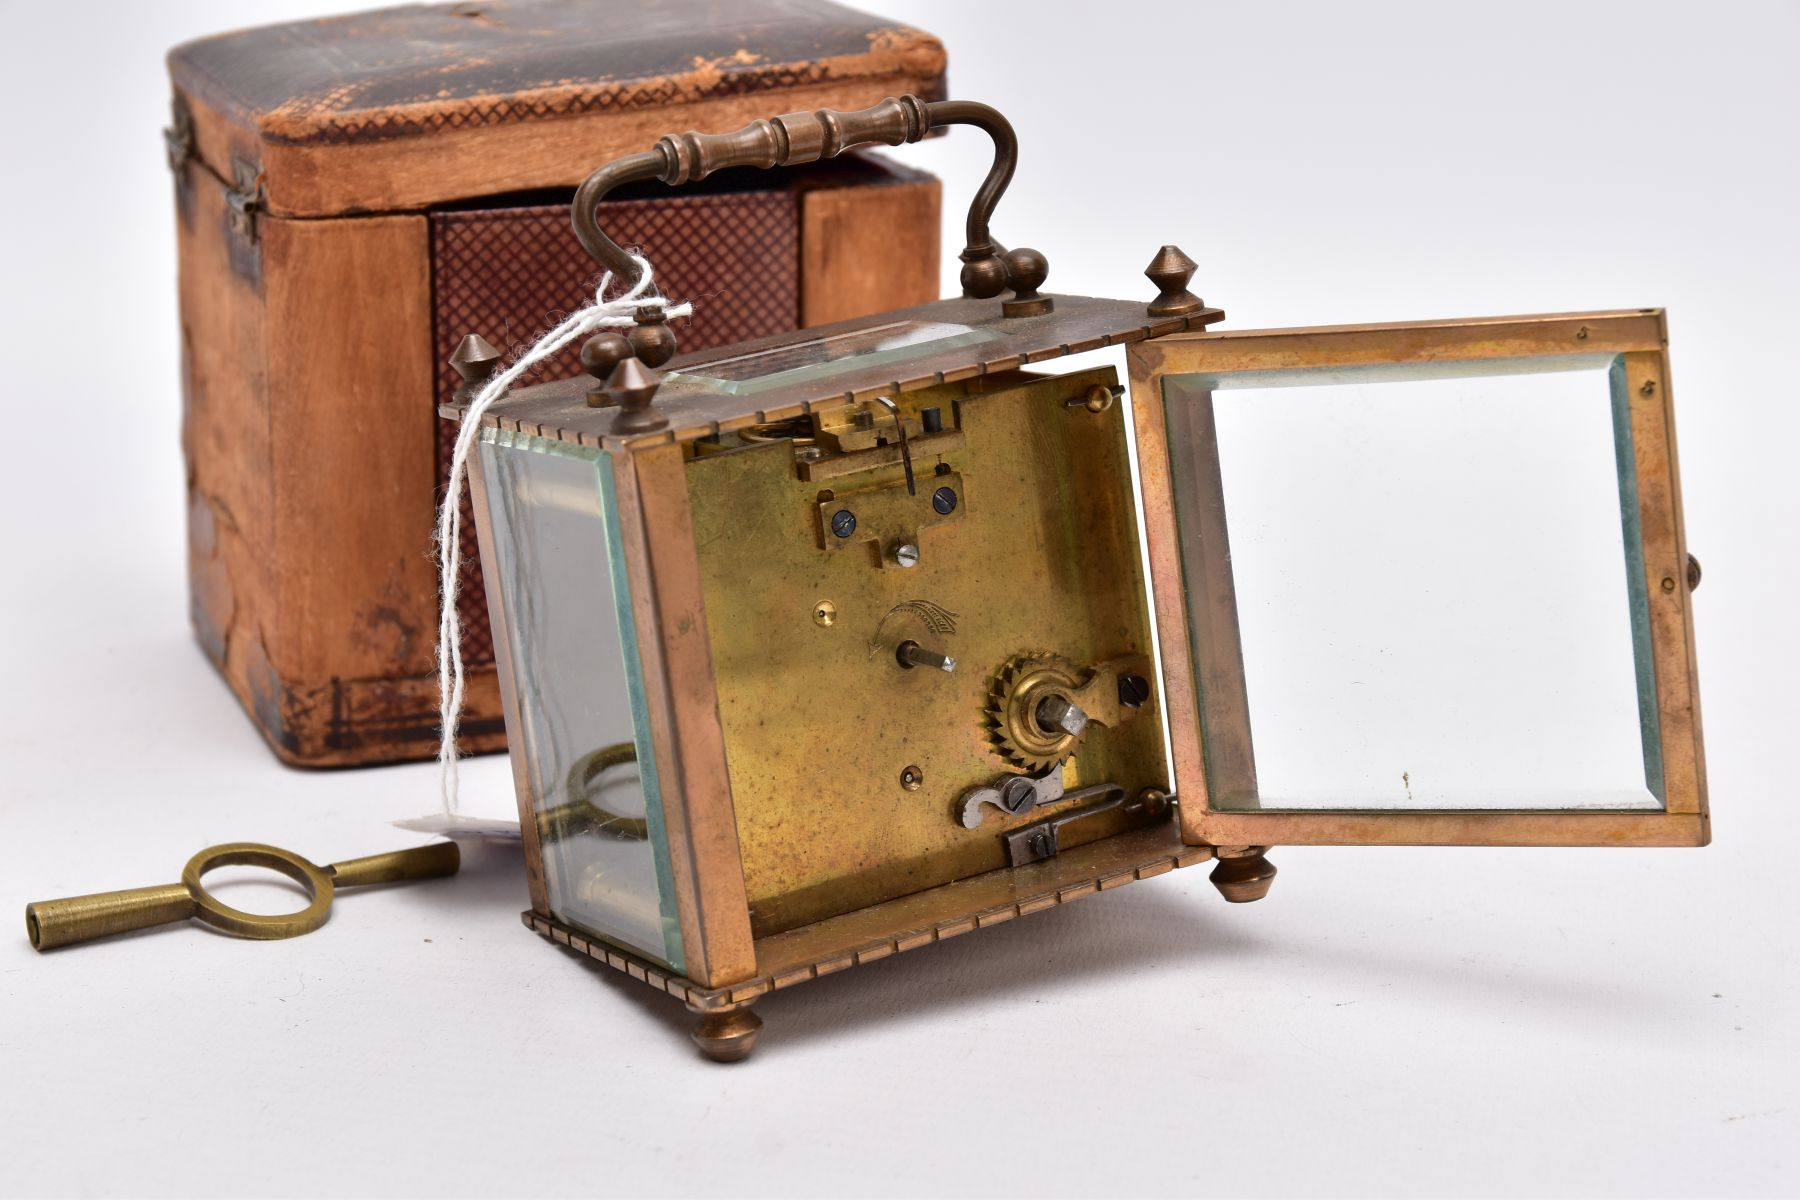 A SMALL LEATHER CASED BRASS TRAVEL CARRIAGE CLOCK, glass panels, white dial with roman numerals, - Image 4 of 8